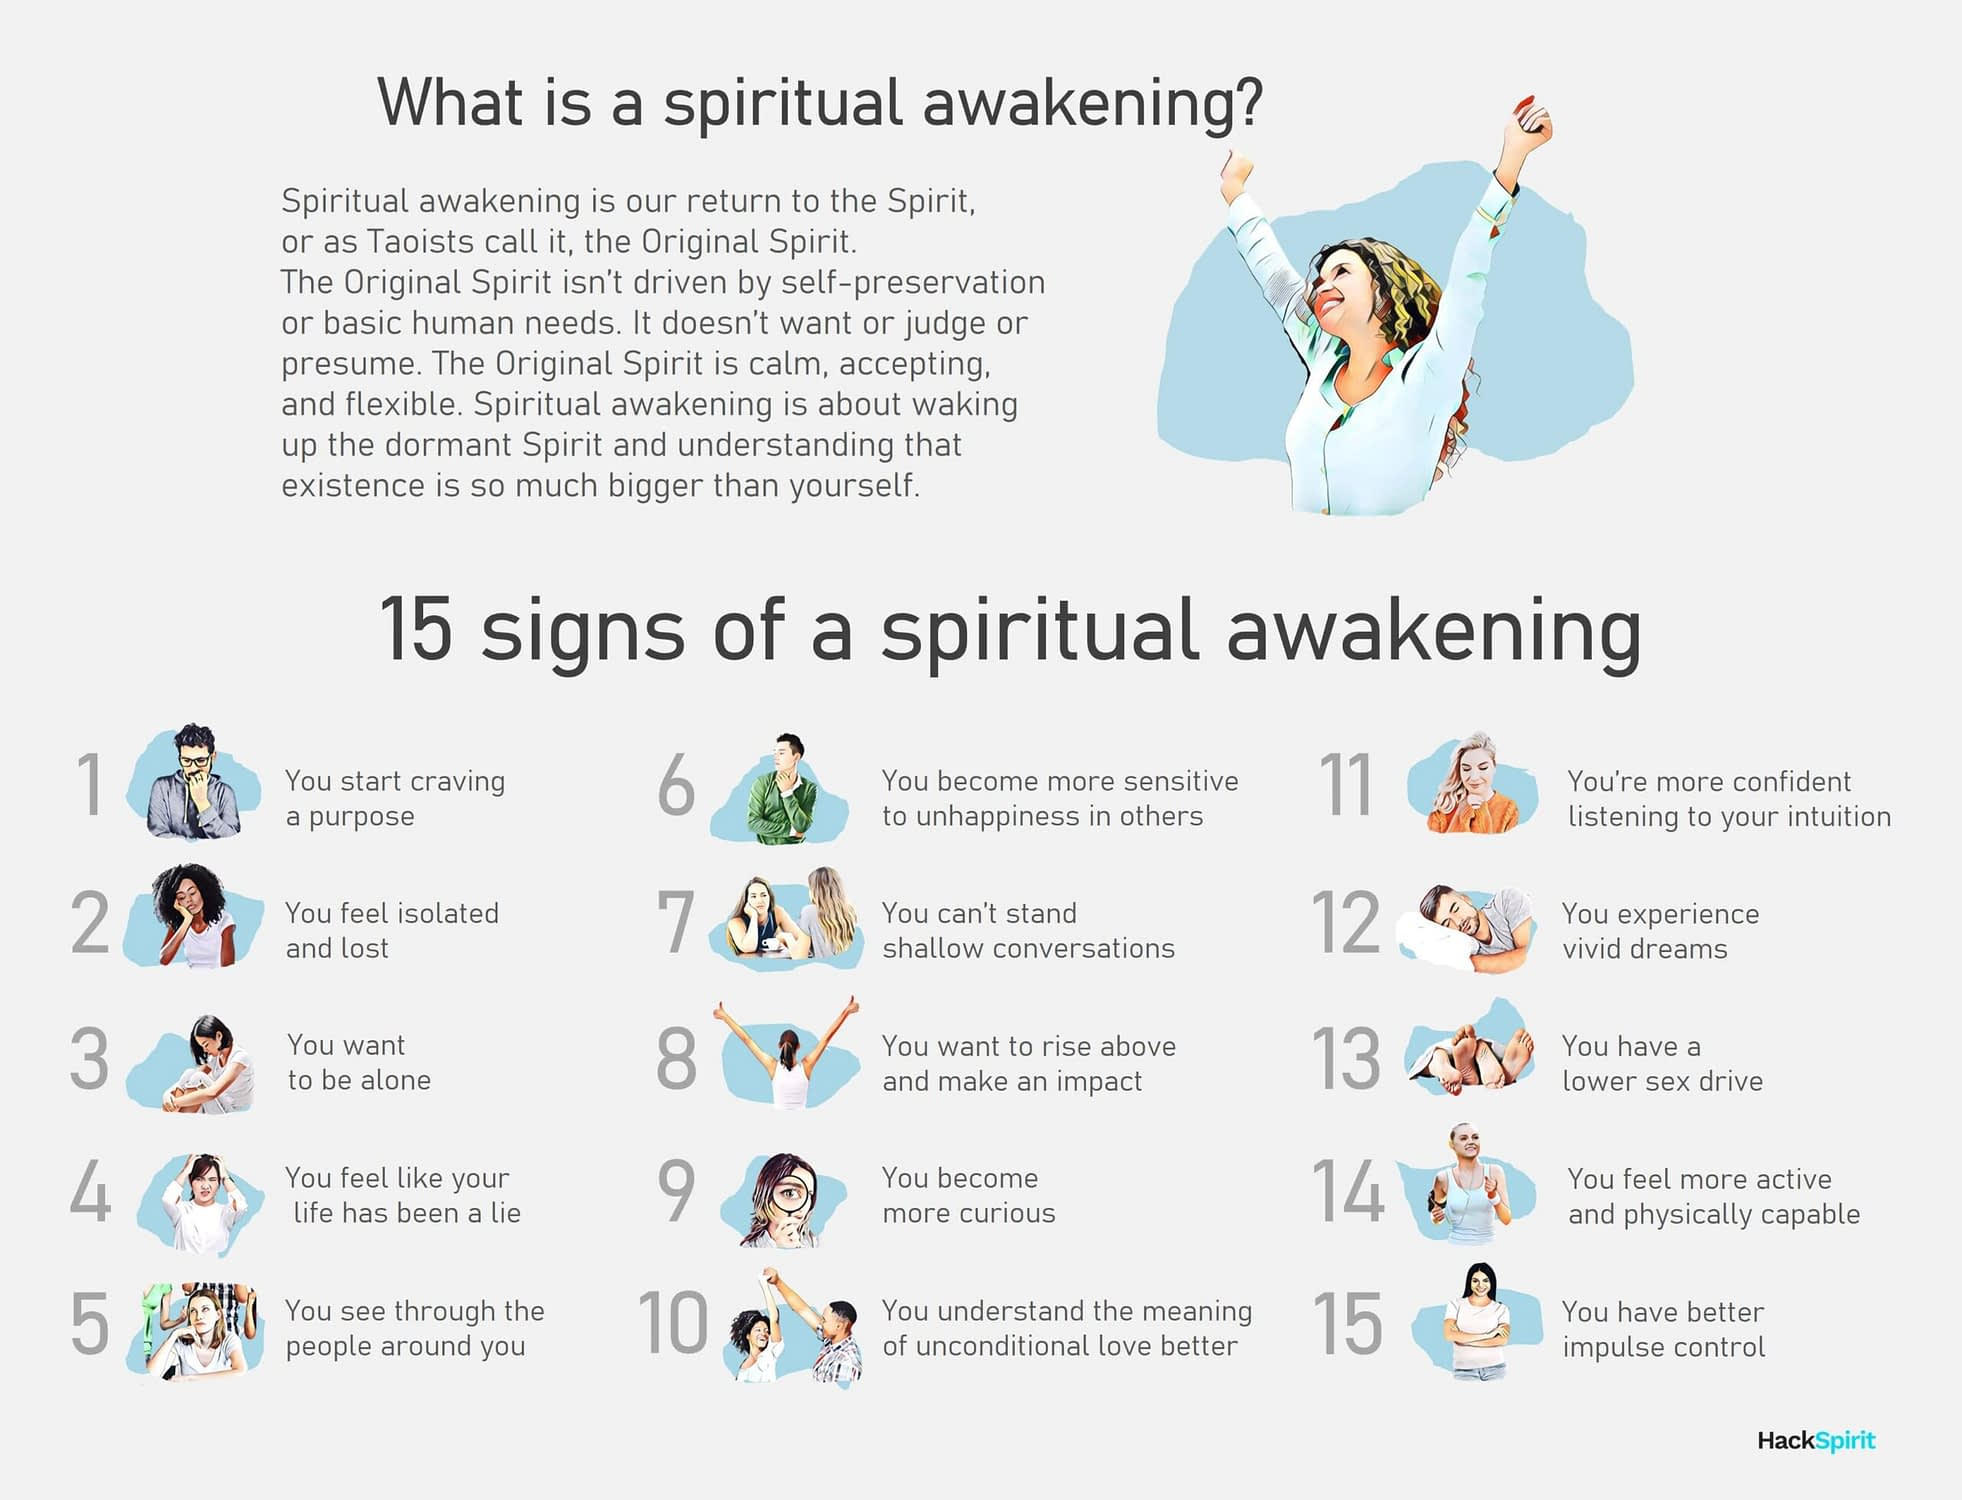 What is a spiritual awakening? 15 signs someone is going through a spiritual awakening